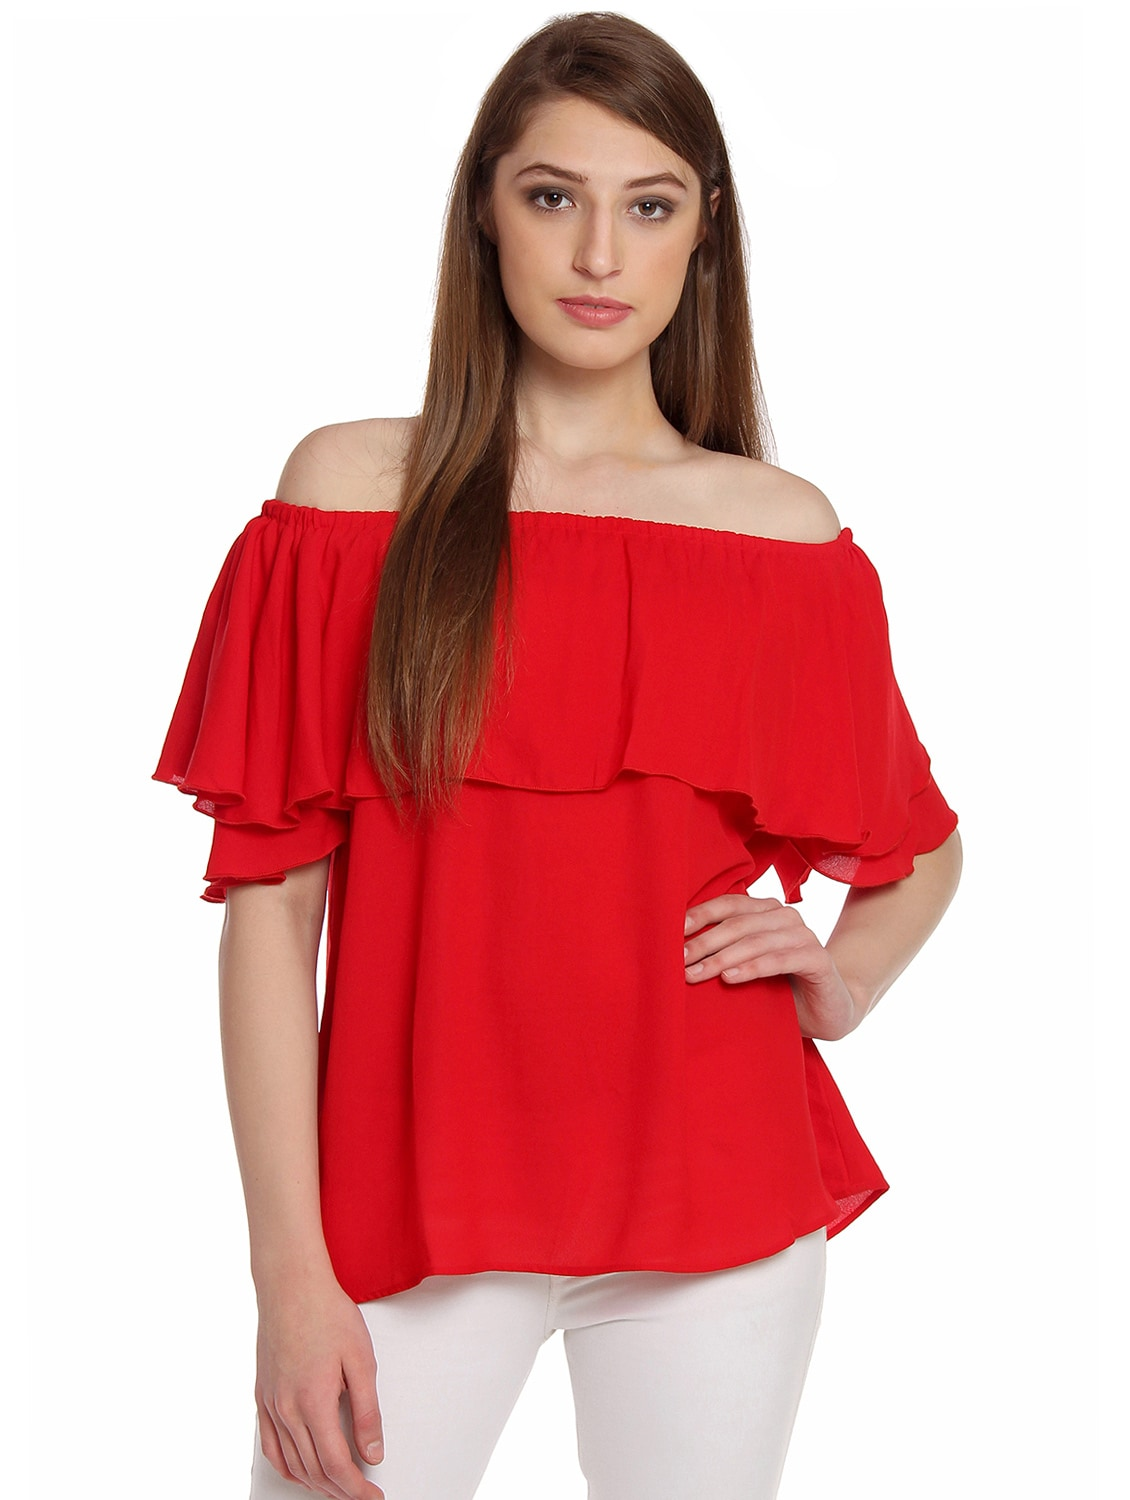 817dc95eef0 Buy Red Crepe Off Shoulder Top for Women from One Of A Kind for ₹950 at 27%  off | 2019 Limeroad.com